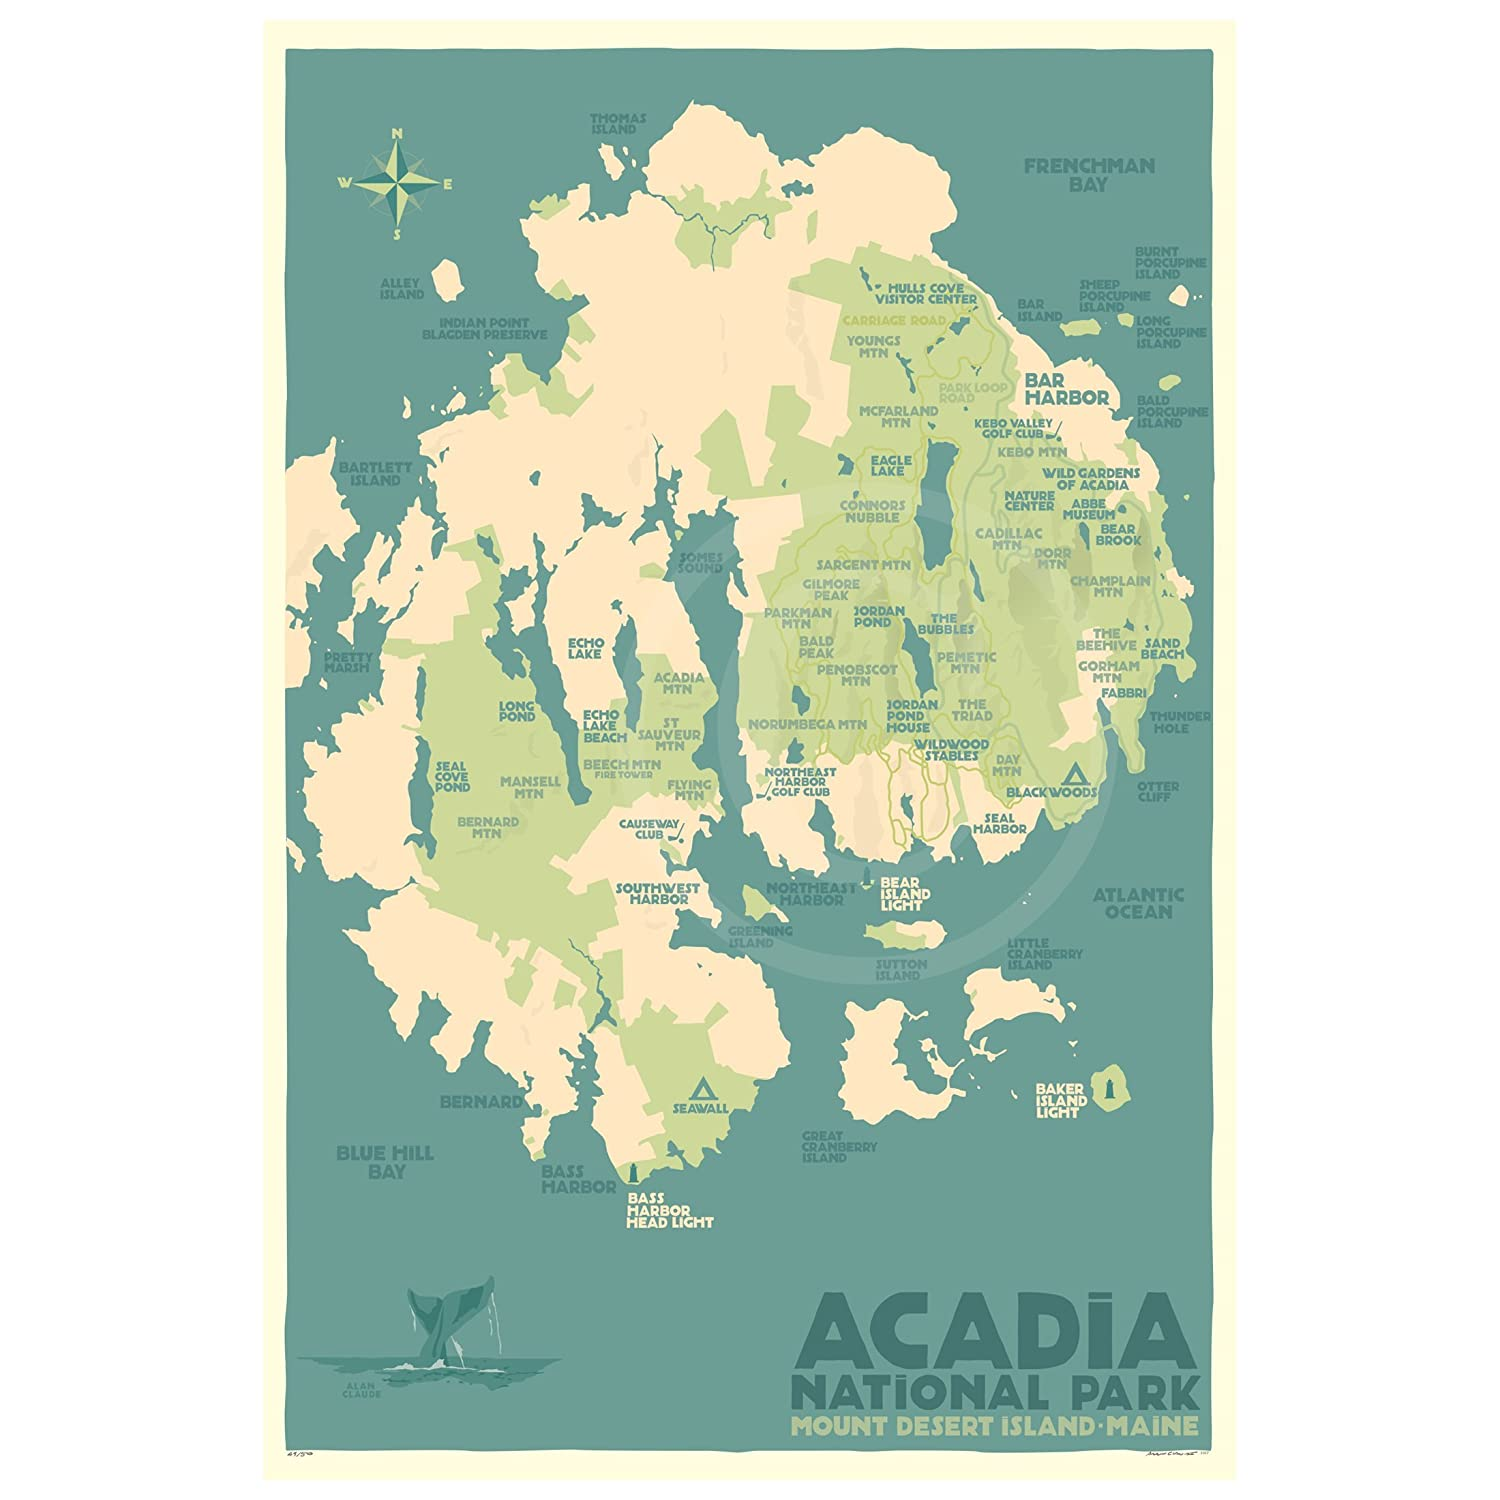 Acadia National Park Map Maine Print Wall 24x36 Dealing full price reduction Award-winning store Travel Poster